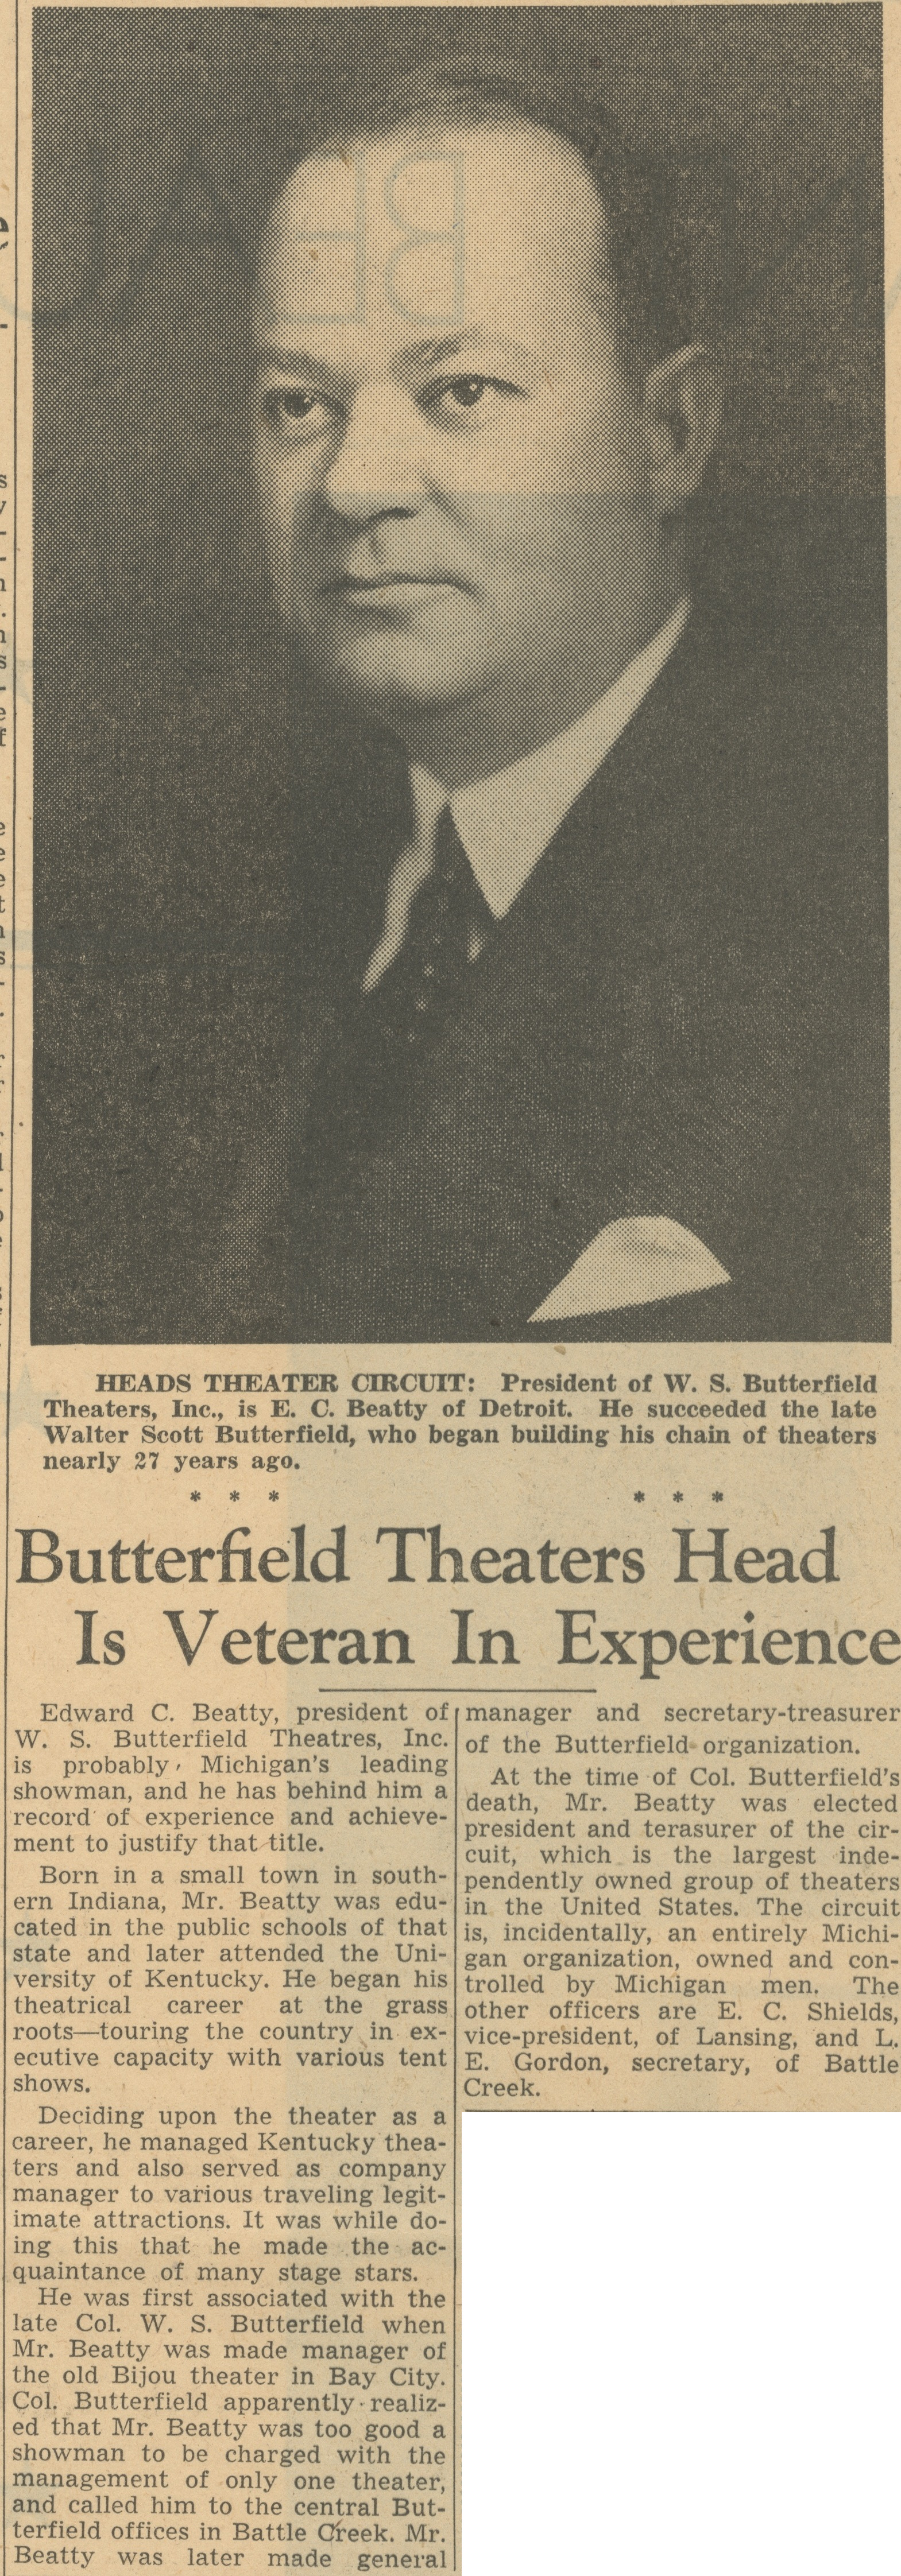 Butterfield Theaters Head Is Veteran In Experience image